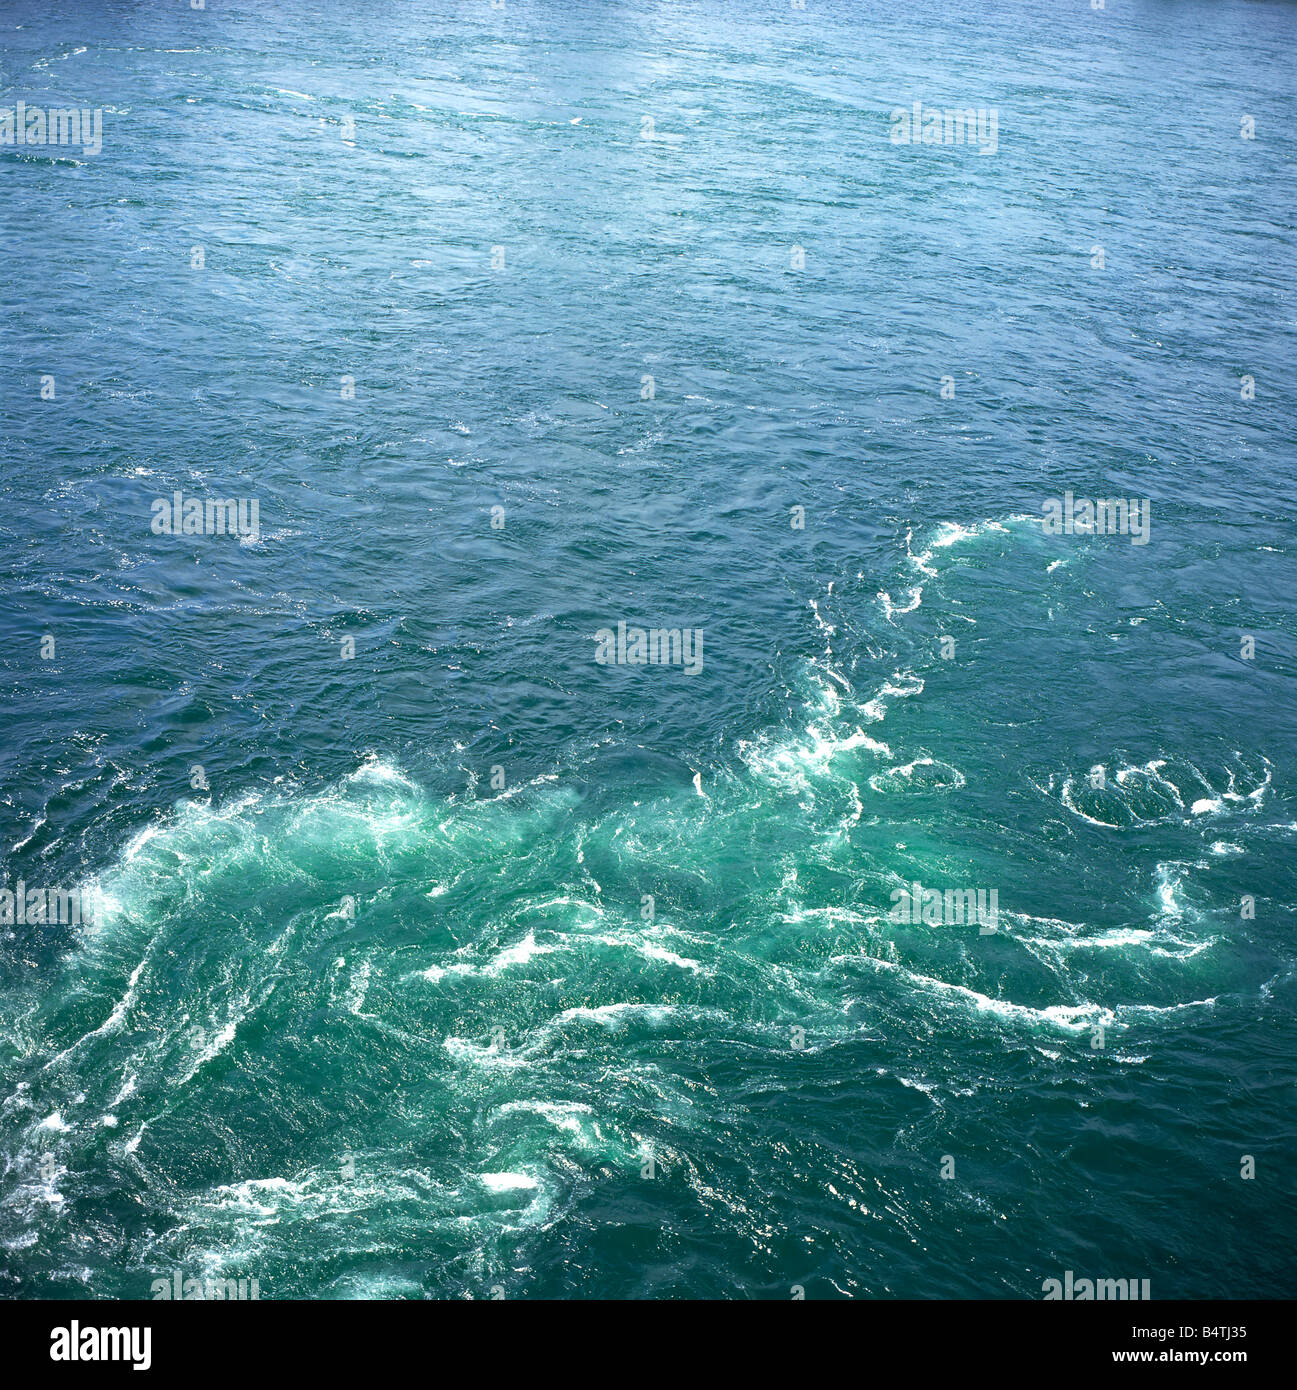 The swirling waters of the swift flowing Niagara River viewed from the Peace Bridge, Ontario Canada KATHY DEWITT - Stock Image